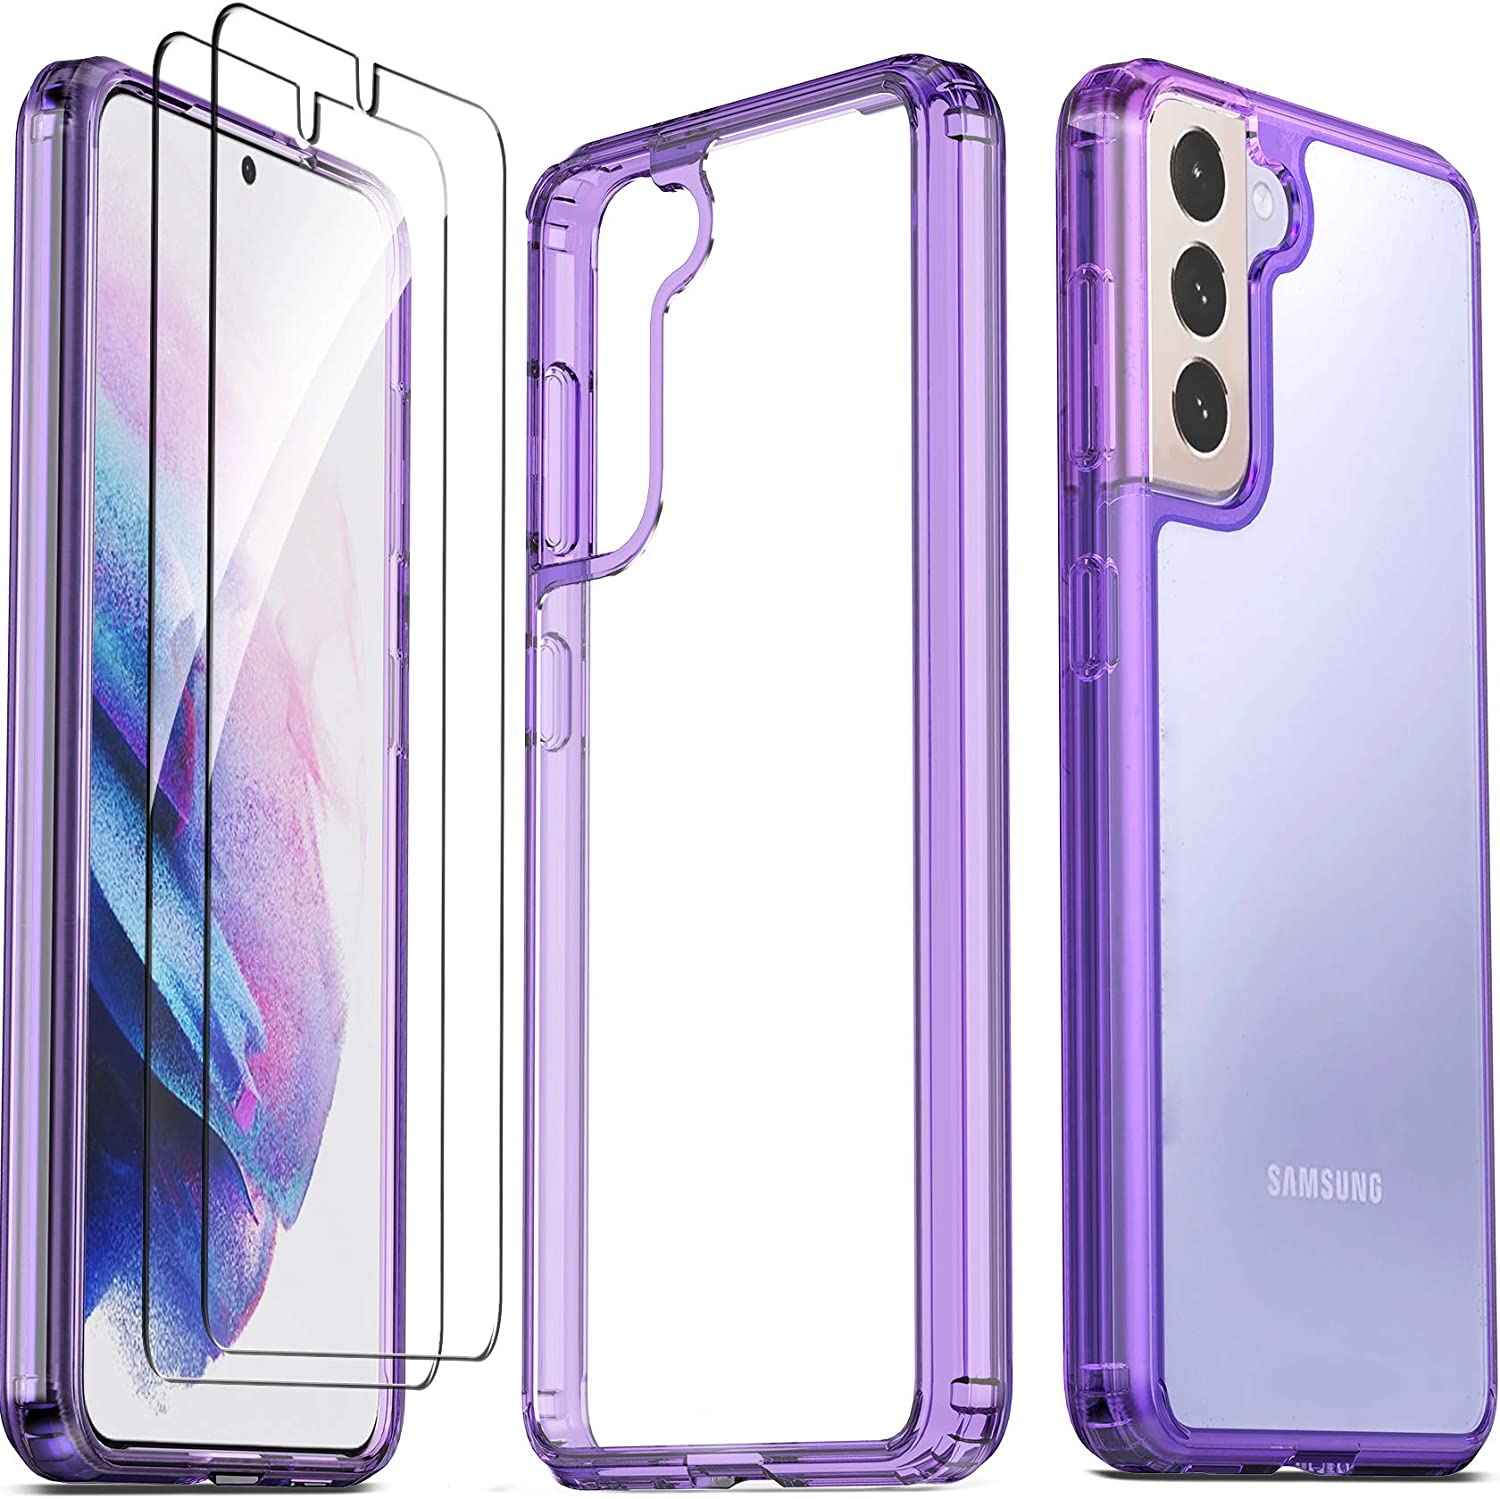 Ferilinso for Samsung Galaxy S21 Case, [NOT Fit S21+ Plus], with 2 Pack Tempered Glass Screen Protector [Hard PC Back TPU Flexible Frame] [Military Grade Protection] [10X Anti-Yellowing]-Purple Cover